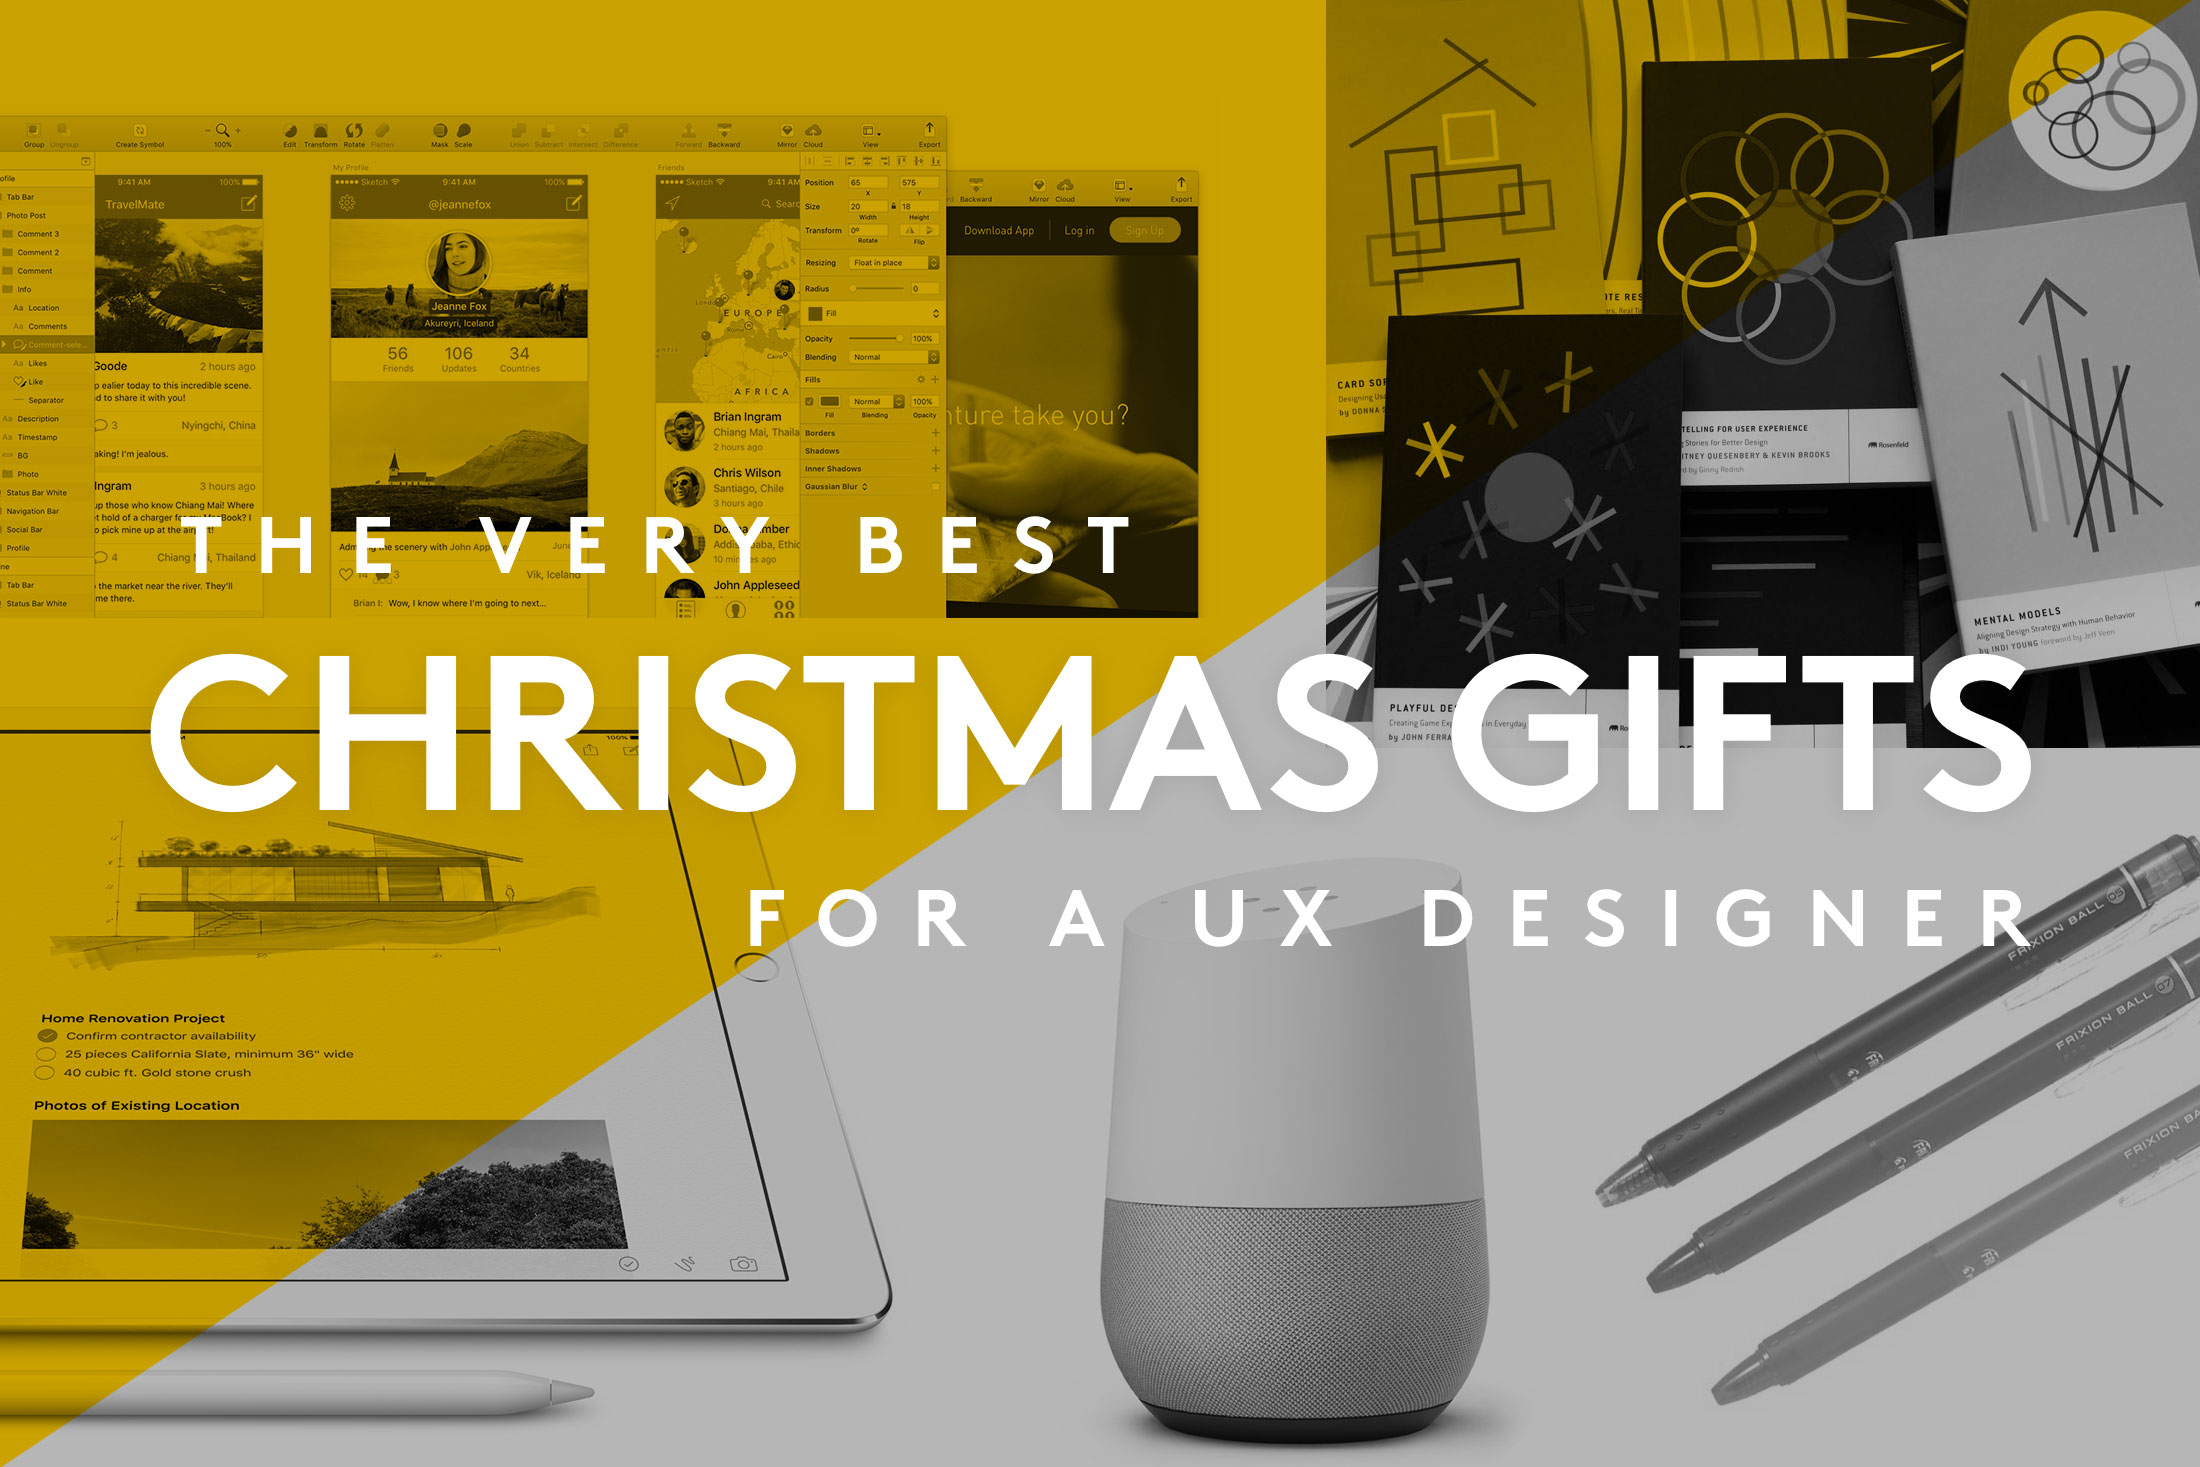 the 20 best christmas gifts for ux designers 2017 edition